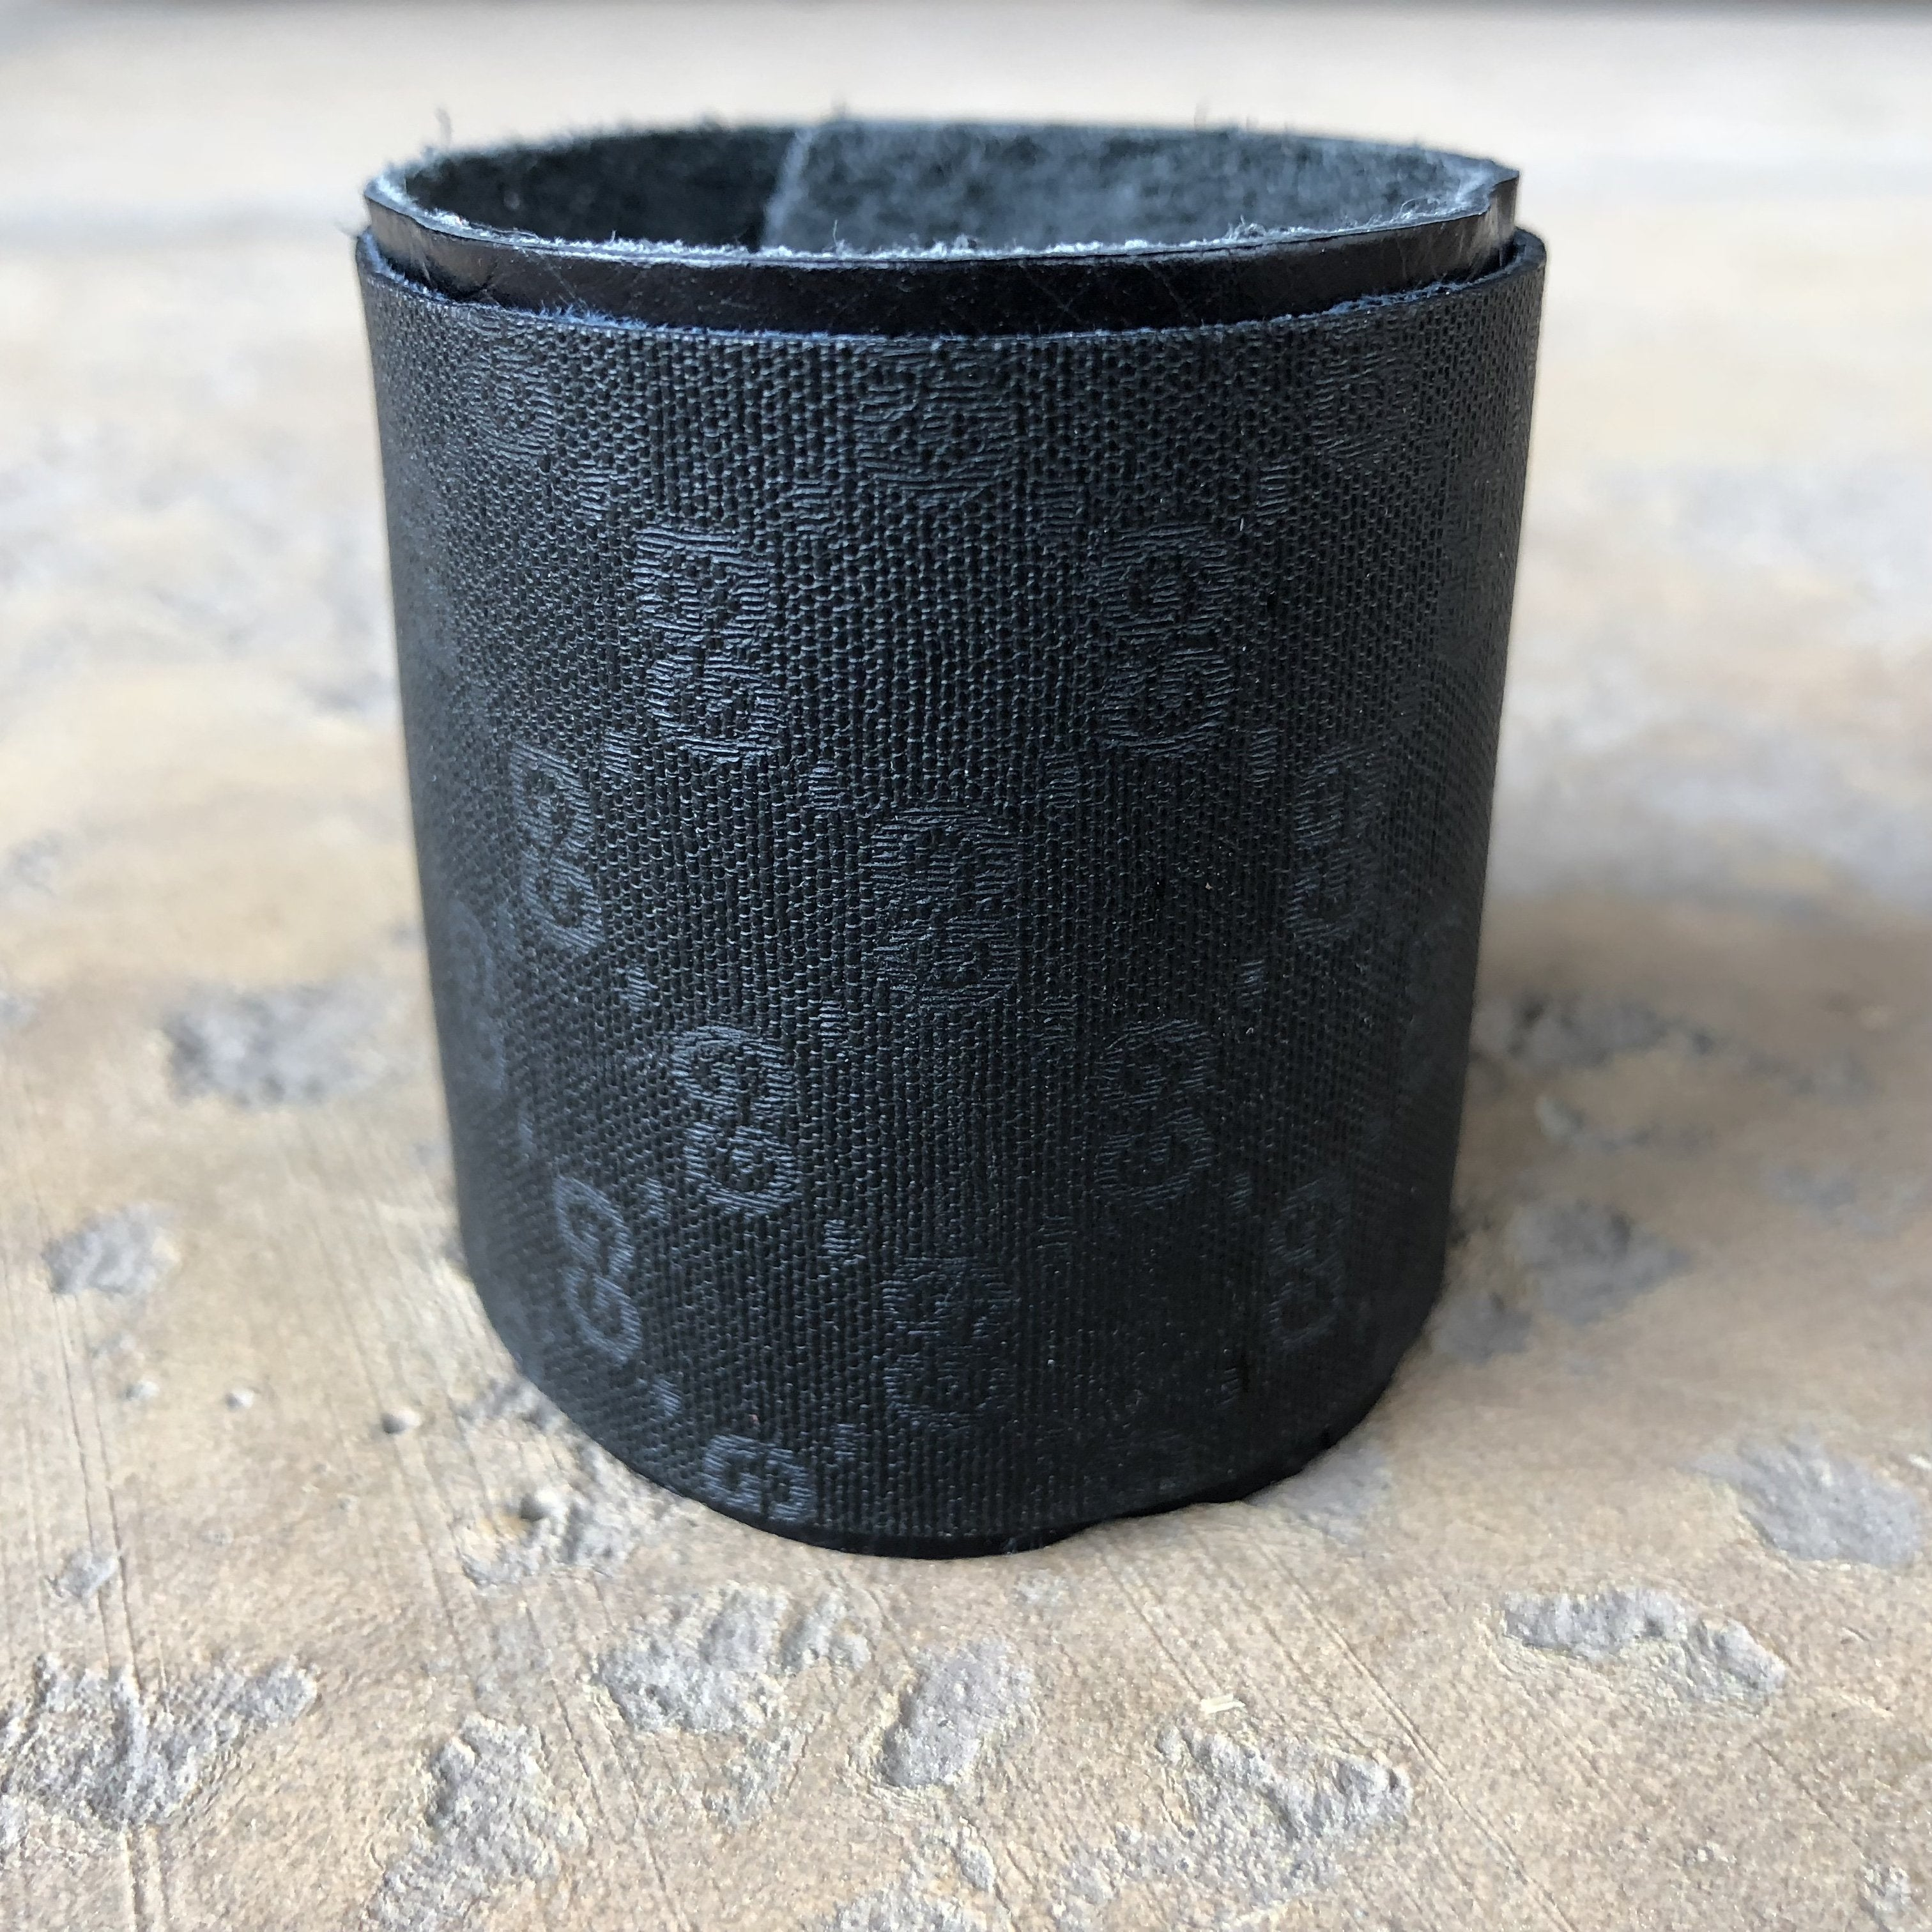 Upcycled Large Gucci Cuff Bracelet